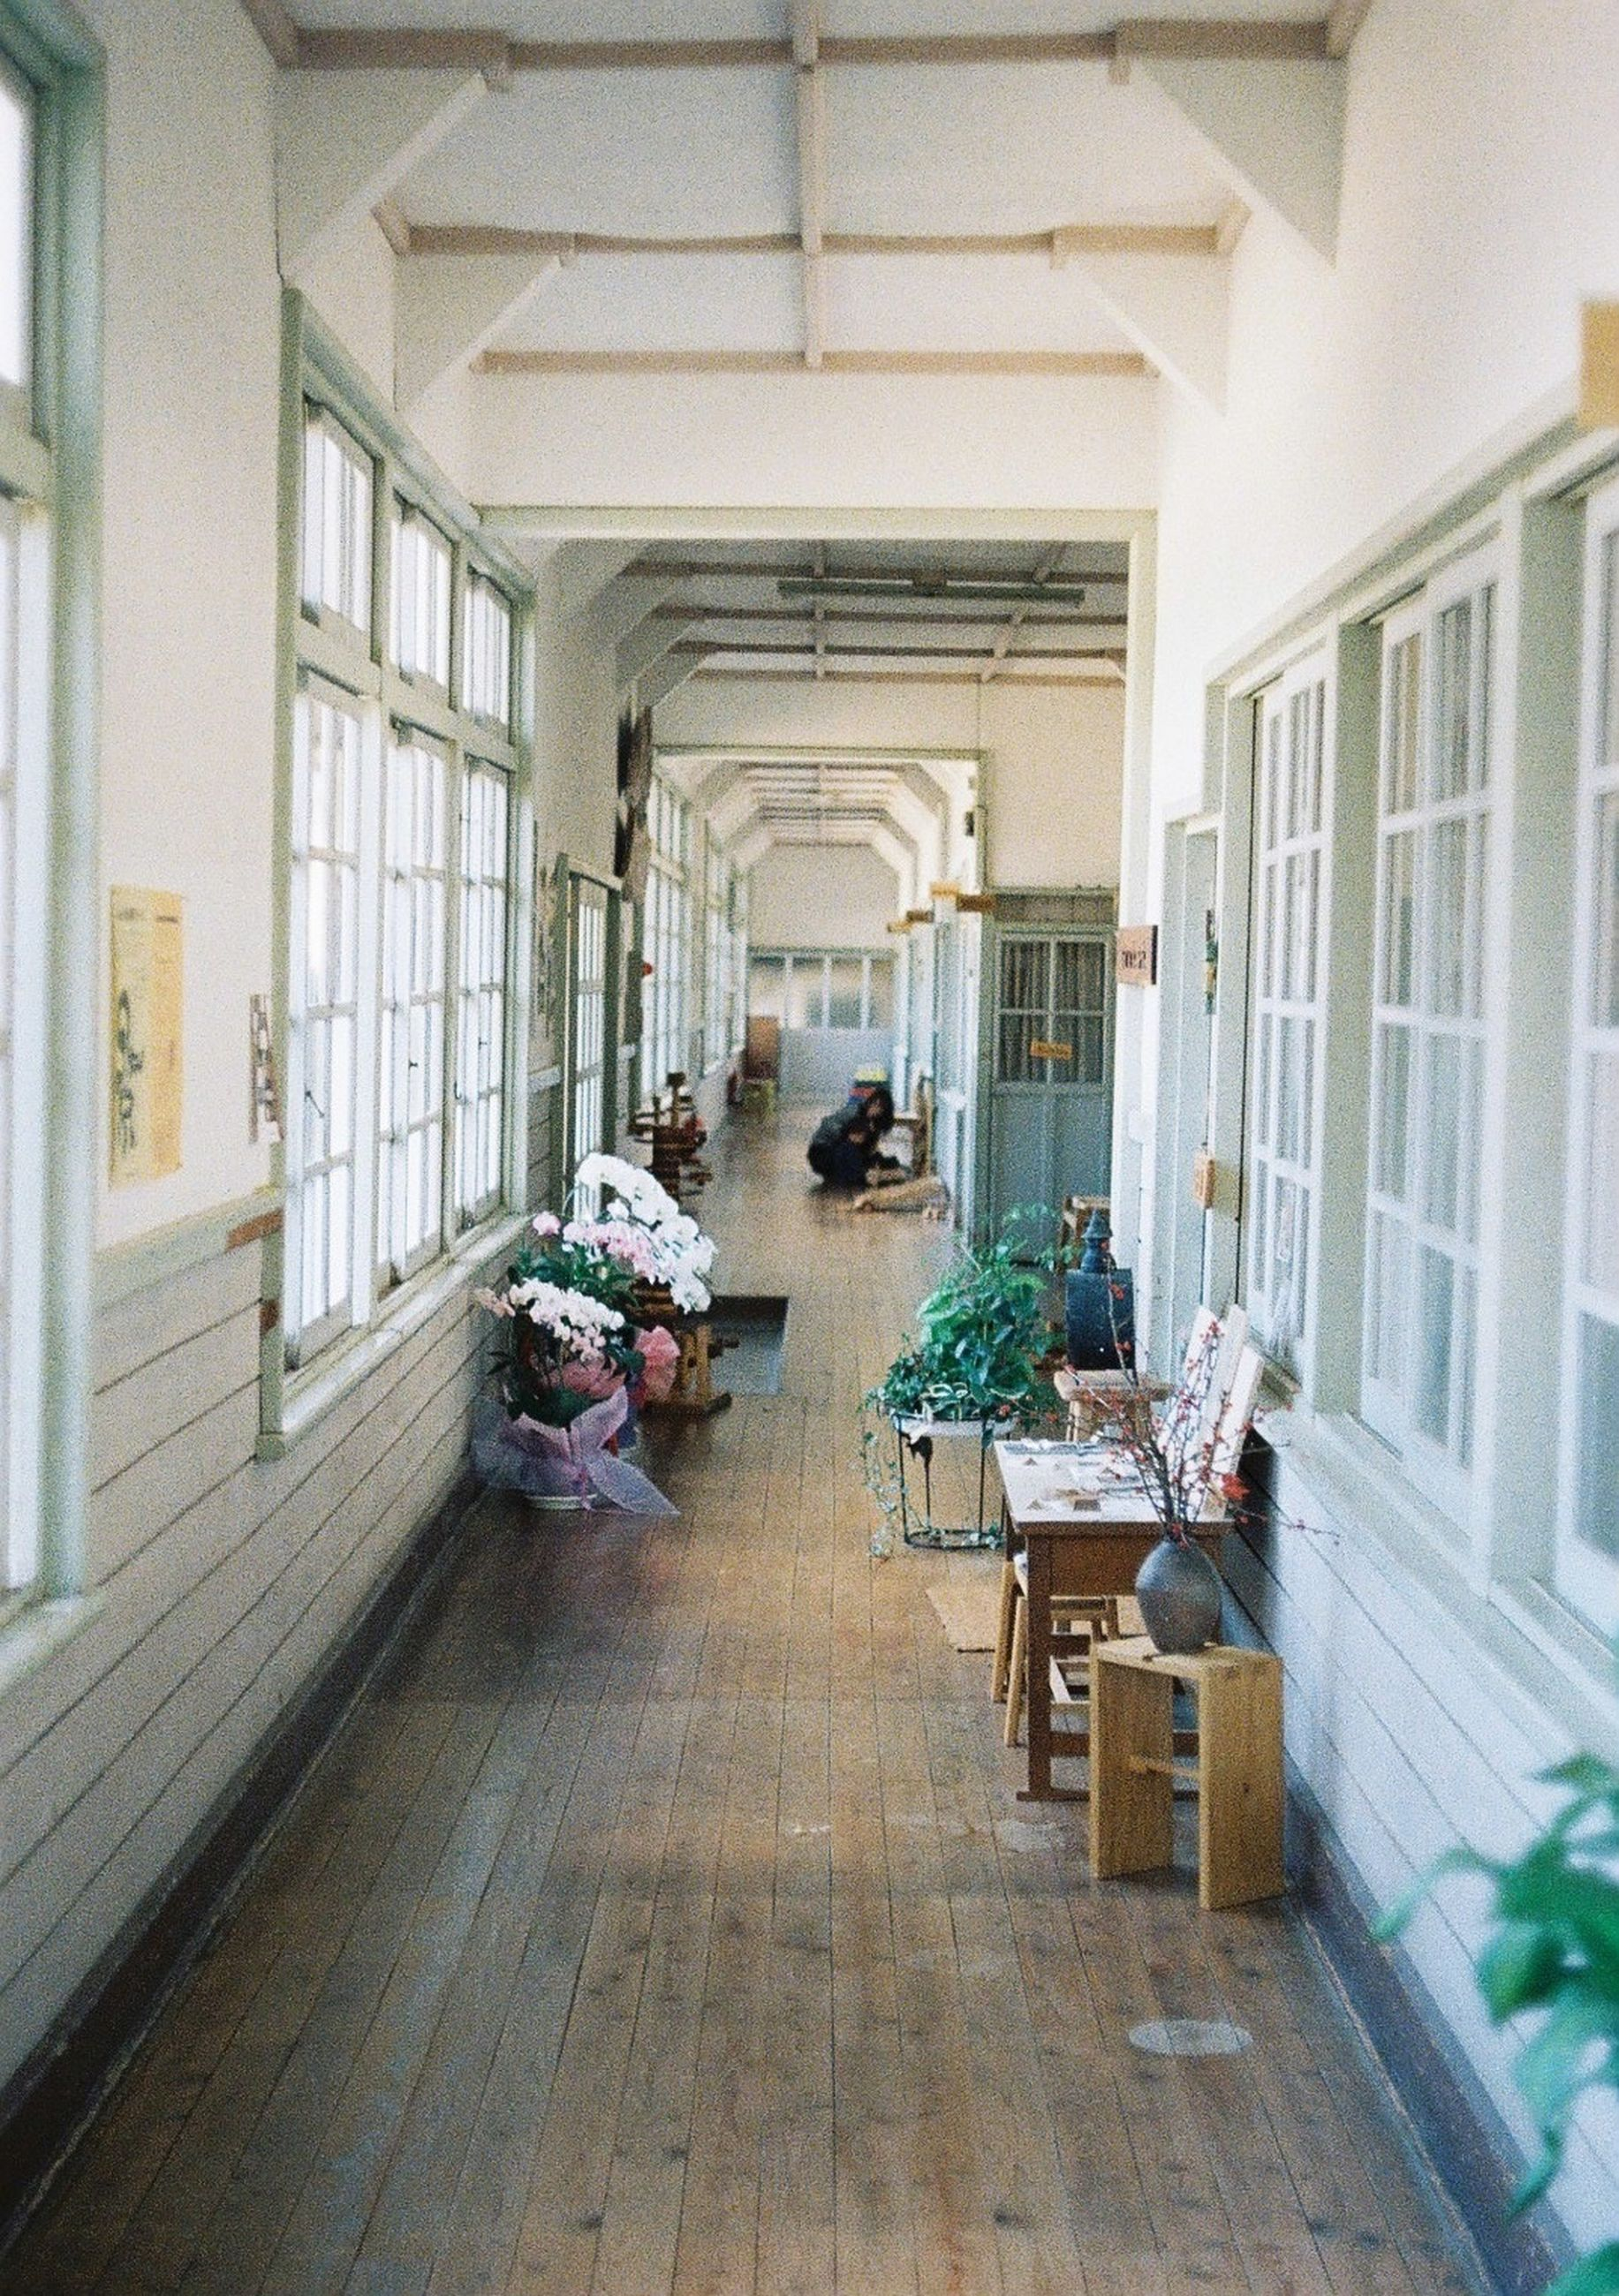 architecture, built structure, indoors, building exterior, the way forward, empty, chair, table, incidental people, day, city, absence, narrow, building, potted plant, corridor, bench, in a row, diminishing perspective, window